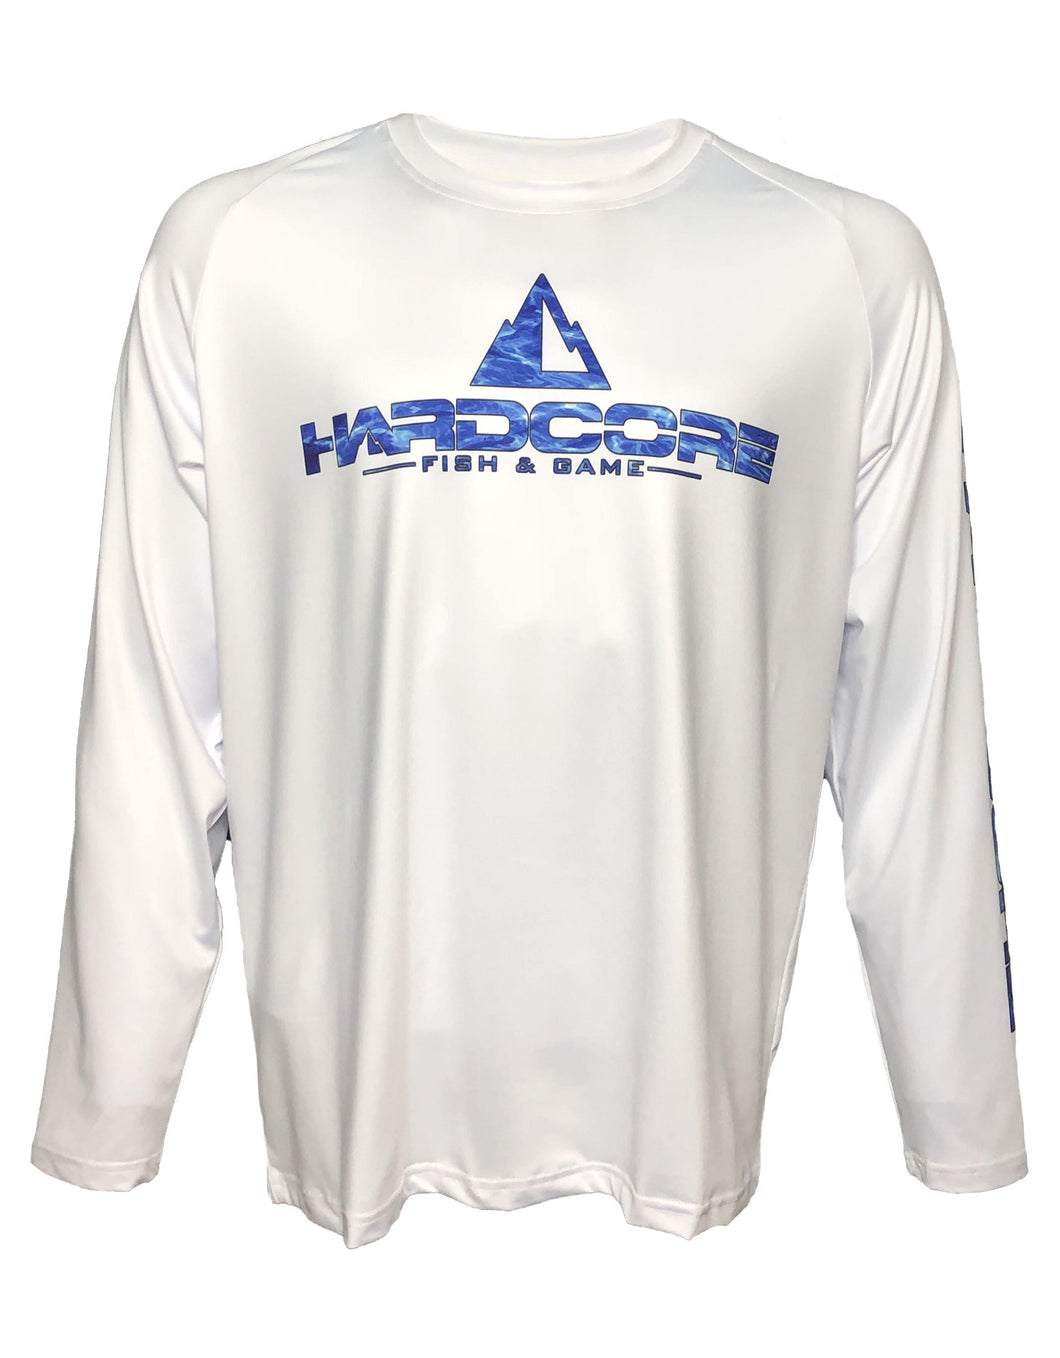 Hardcore Action Blue Marlin Fishing Shirt - Hardcore Fish & Game